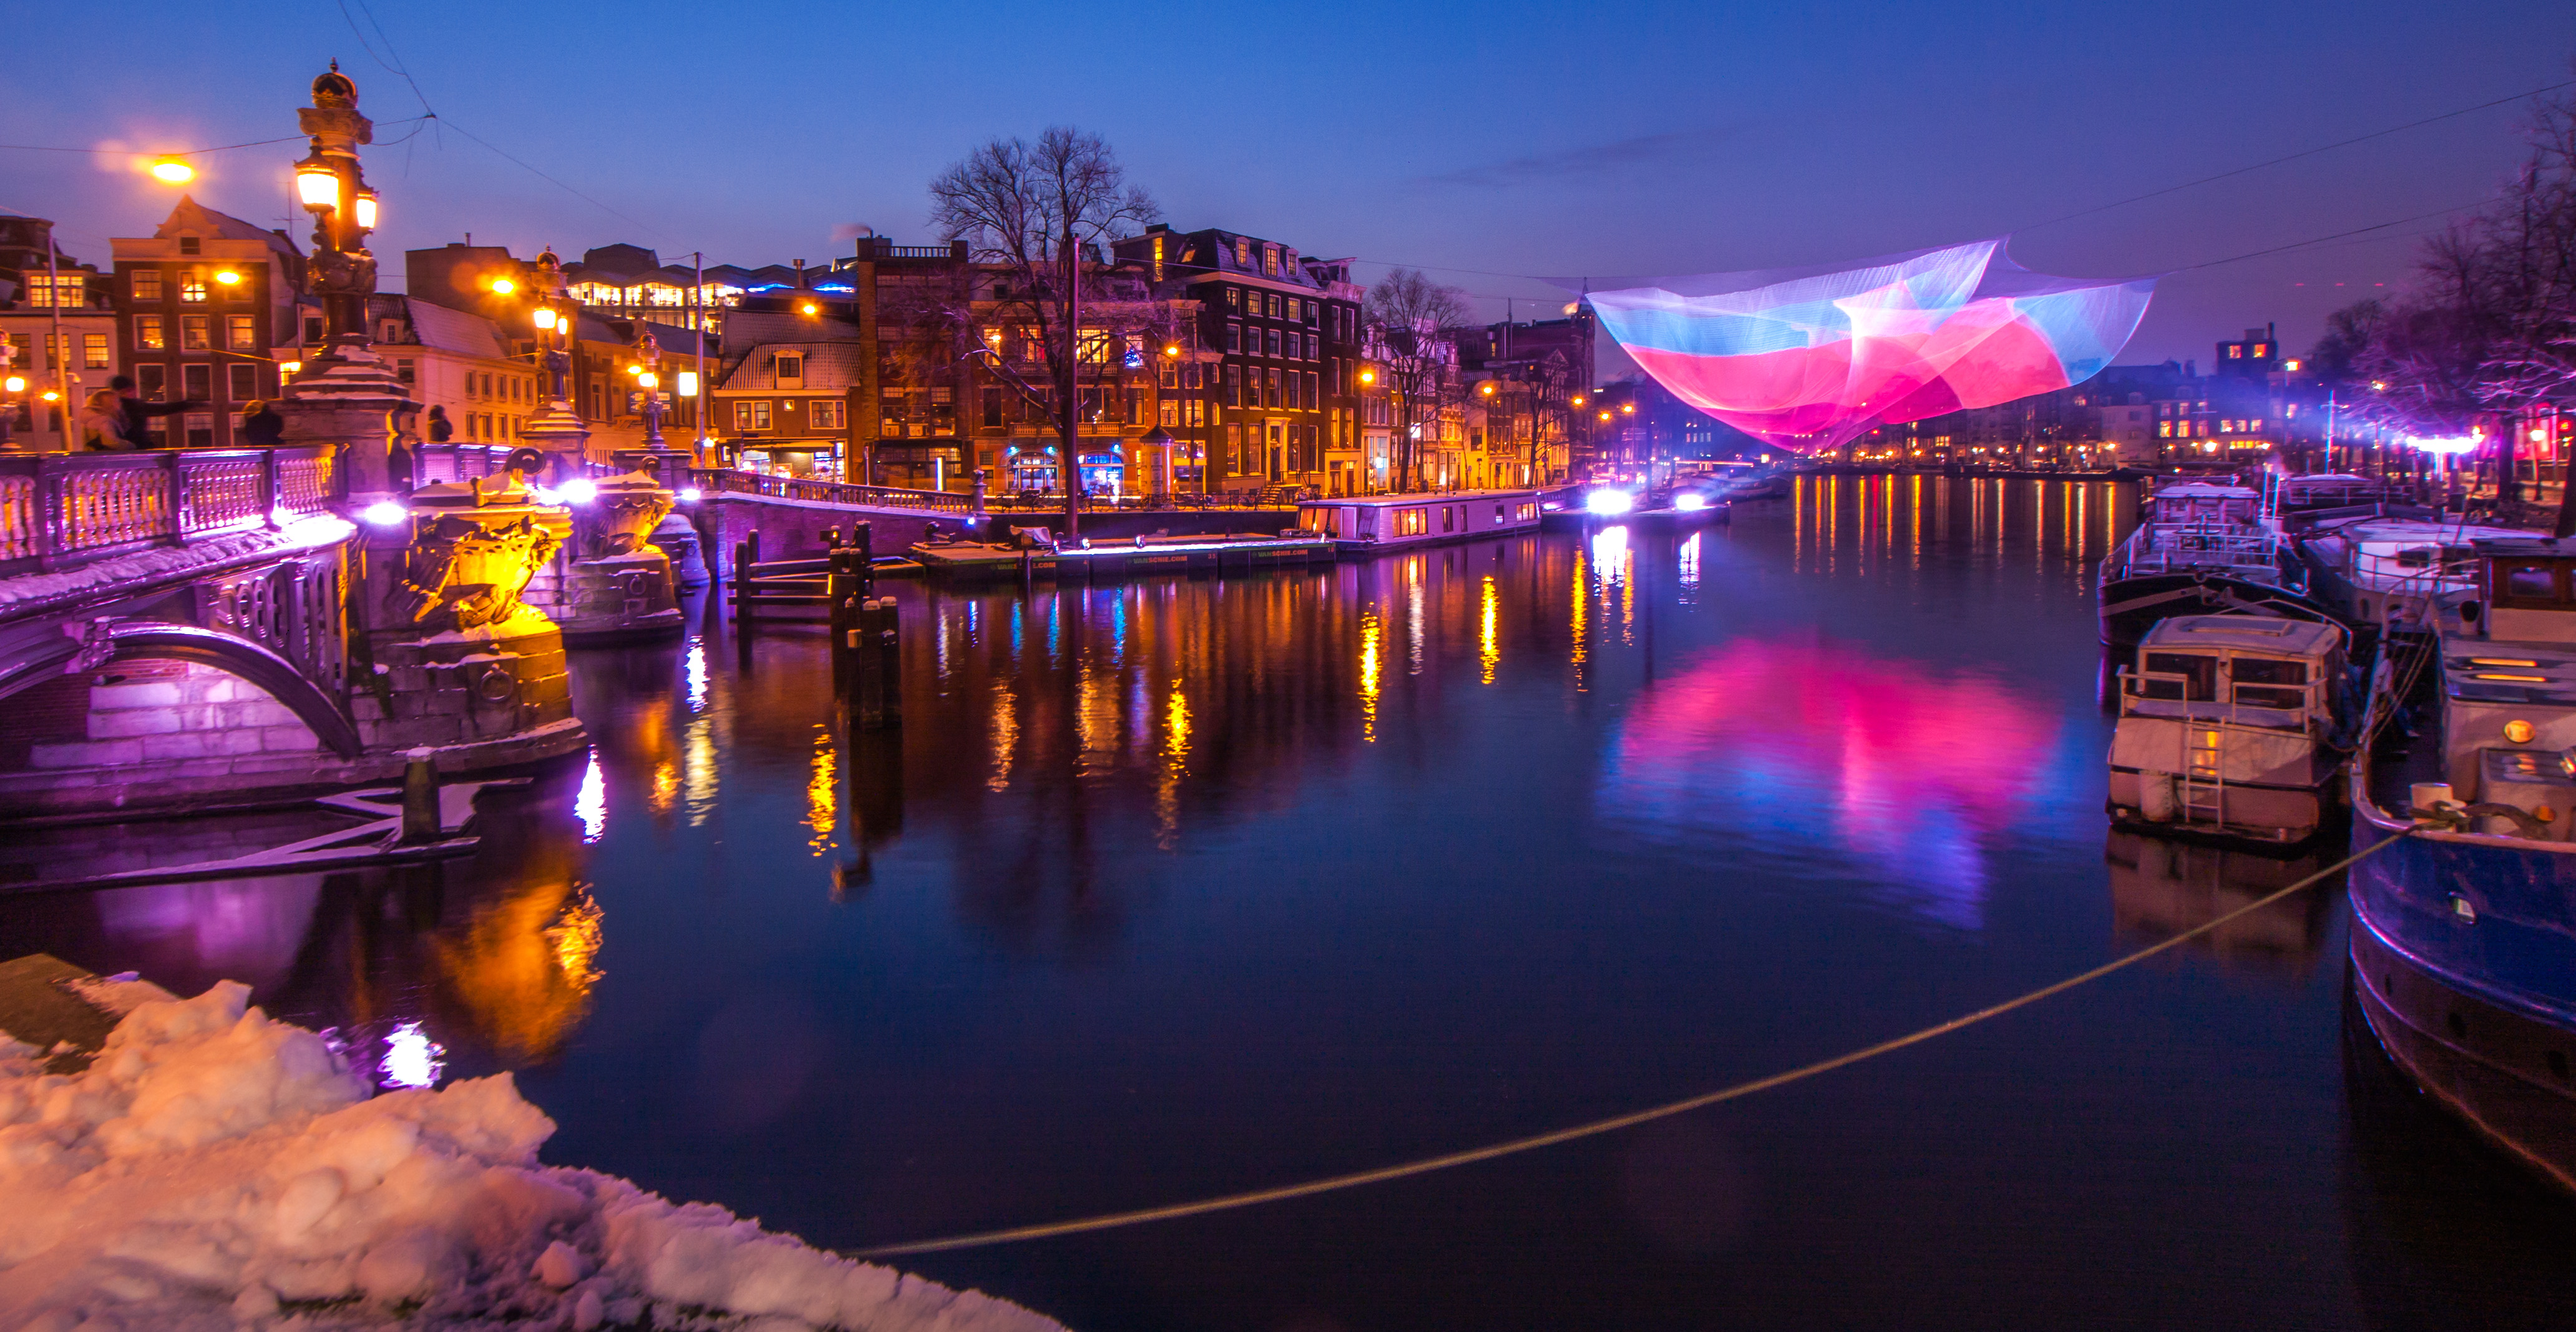 Amsterdam Light Festival on the Amstel river